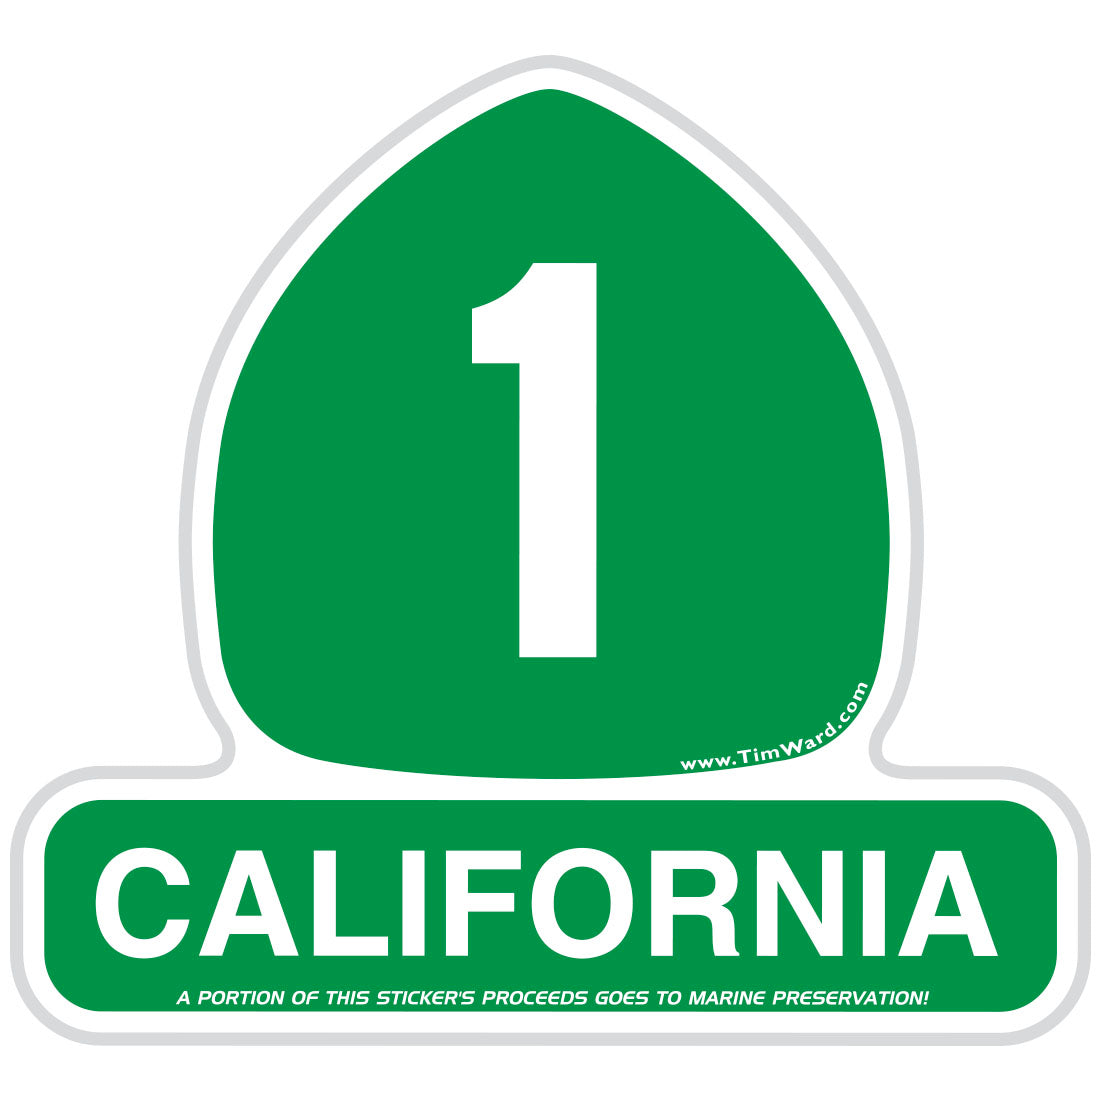 California Highway 1 sign sticker